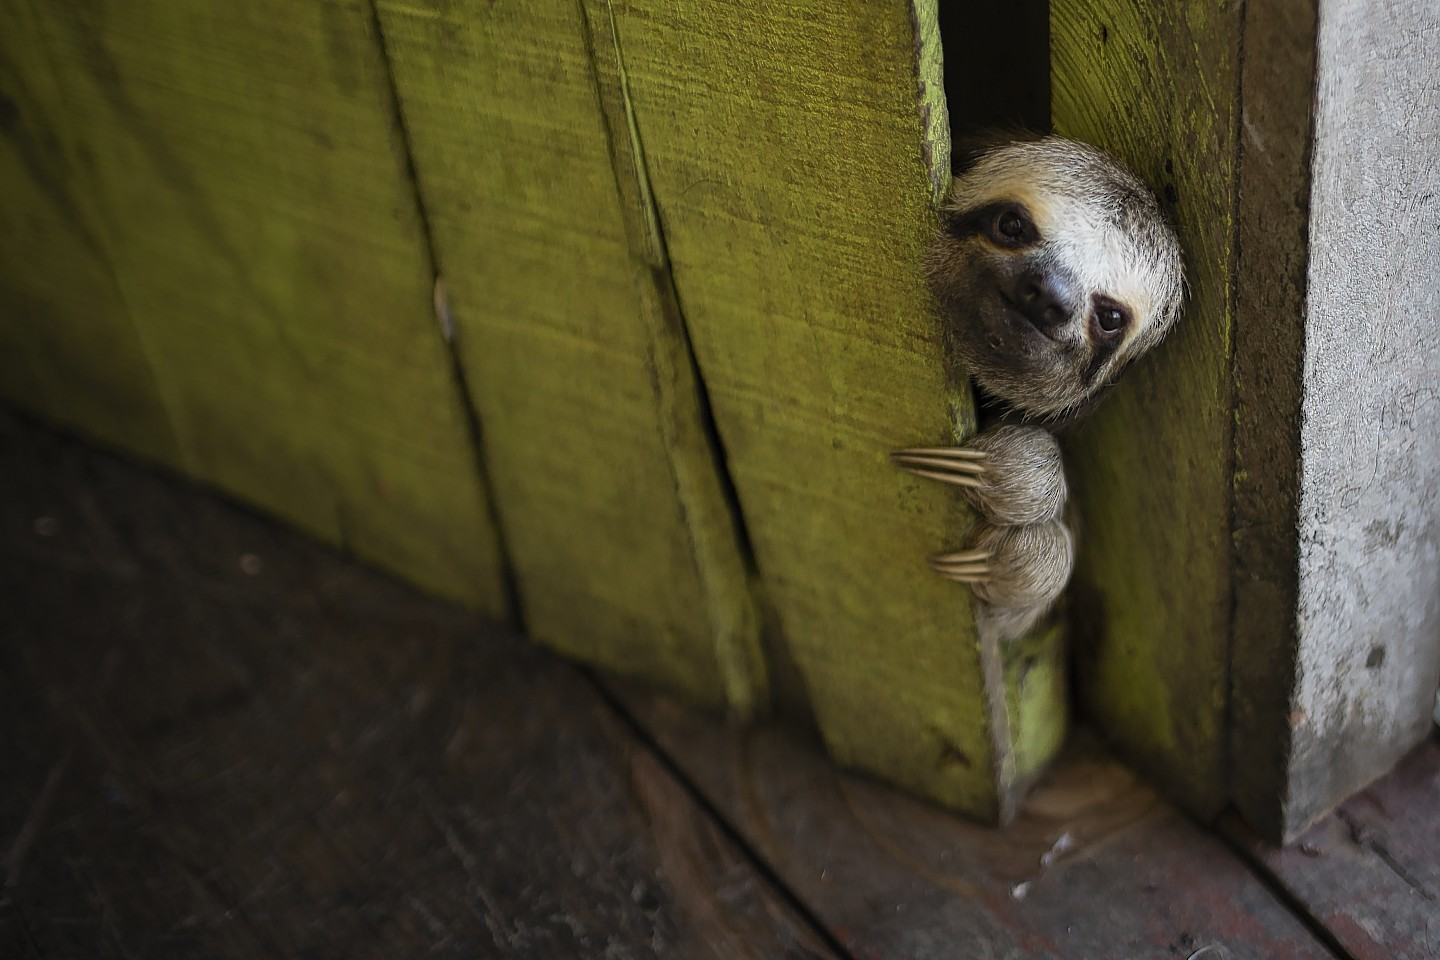 A sloth peeks out from behind a door on a floating house in the 'Lago do Janauari' near Manaus, Brazil